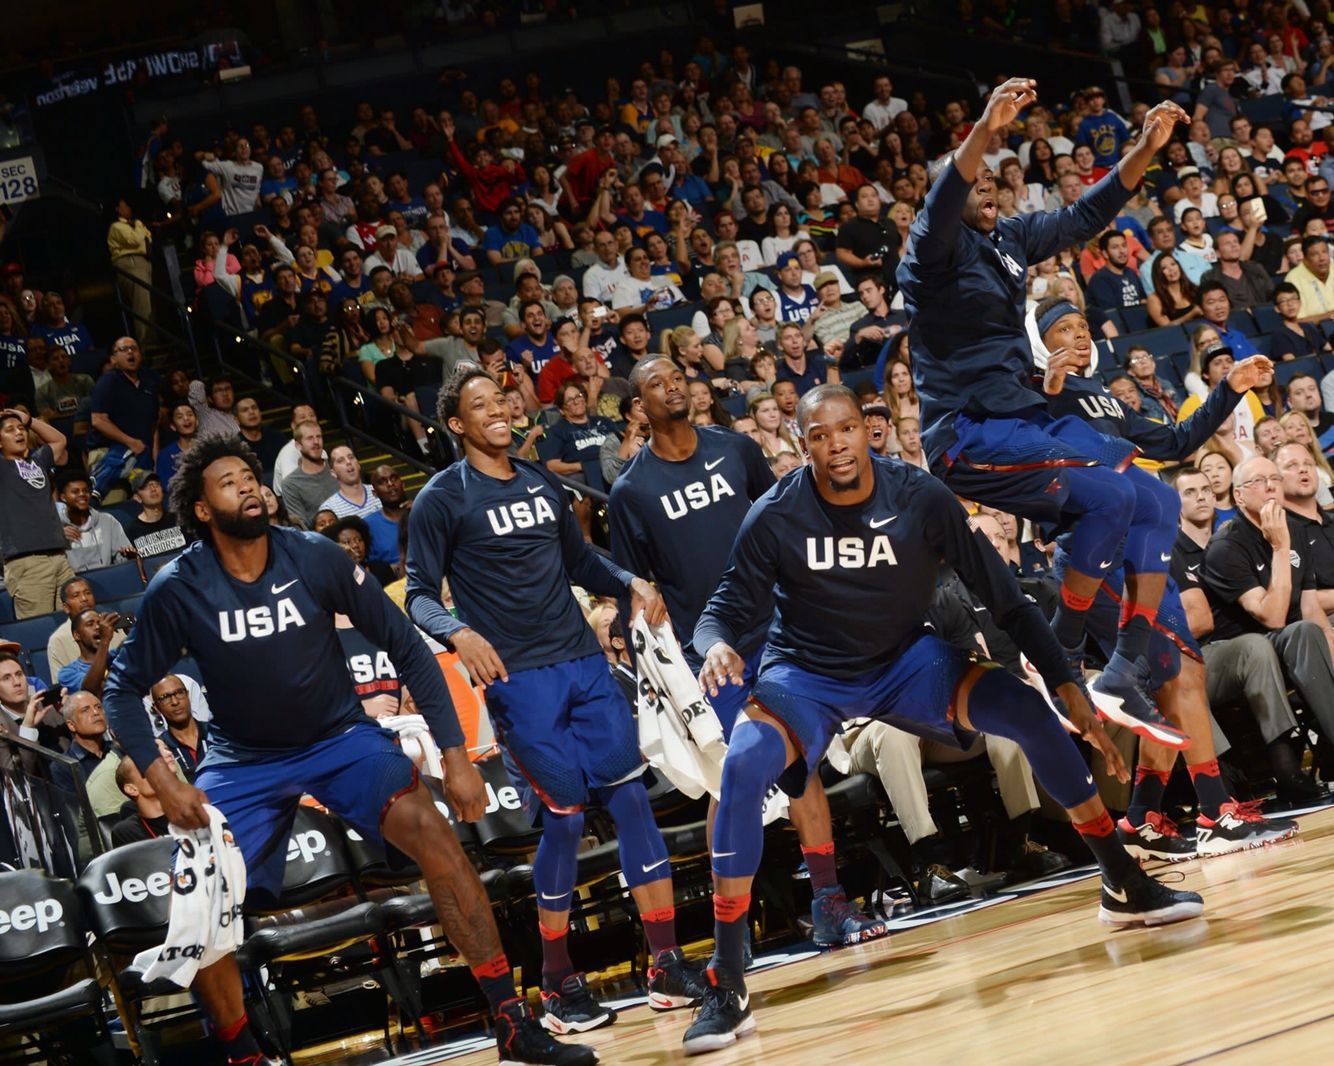 In Kevin Durant S Debut Game In Oakland California Team Usa Bests Team China 2016 Final Score 107 57 At Team Usa 2018 Nba Champions Golden State Warriors